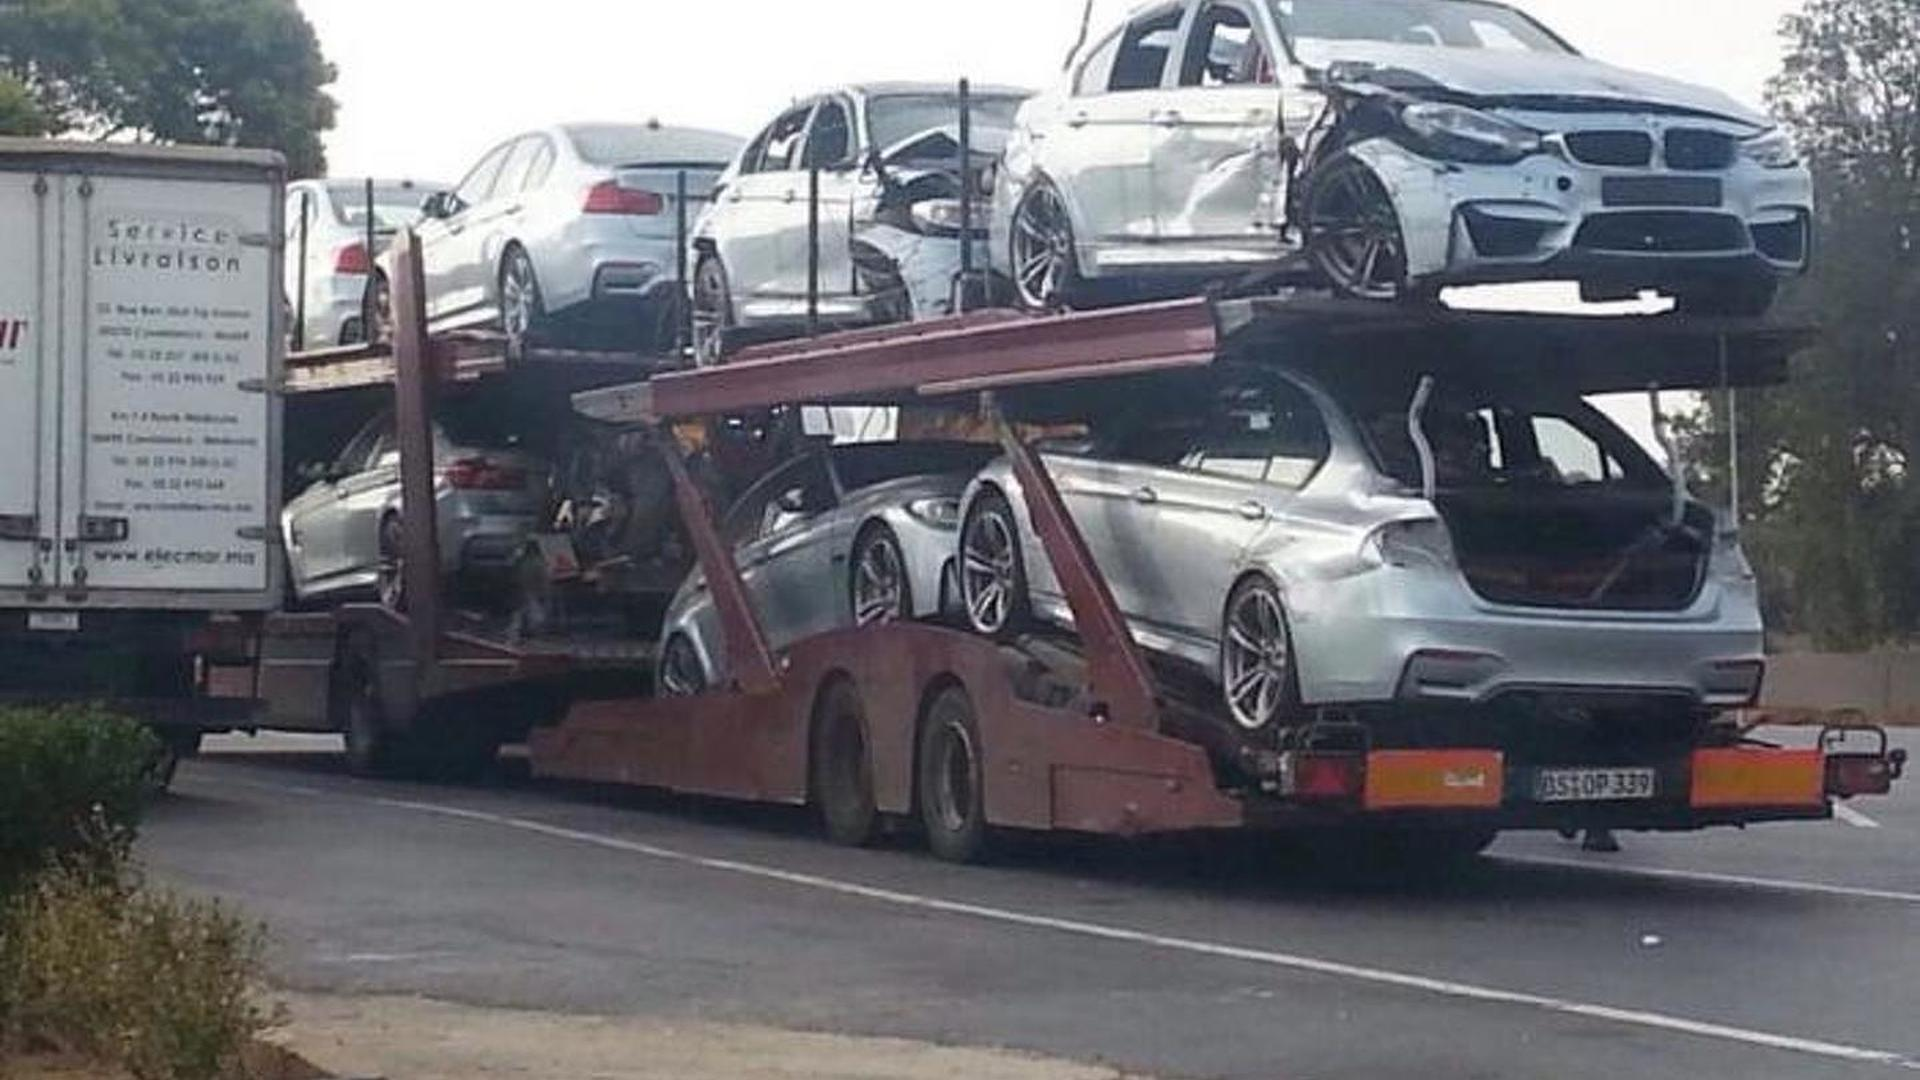 Trailer packed with damaged BMW M3s spotted after Mission Impossible 5 filming